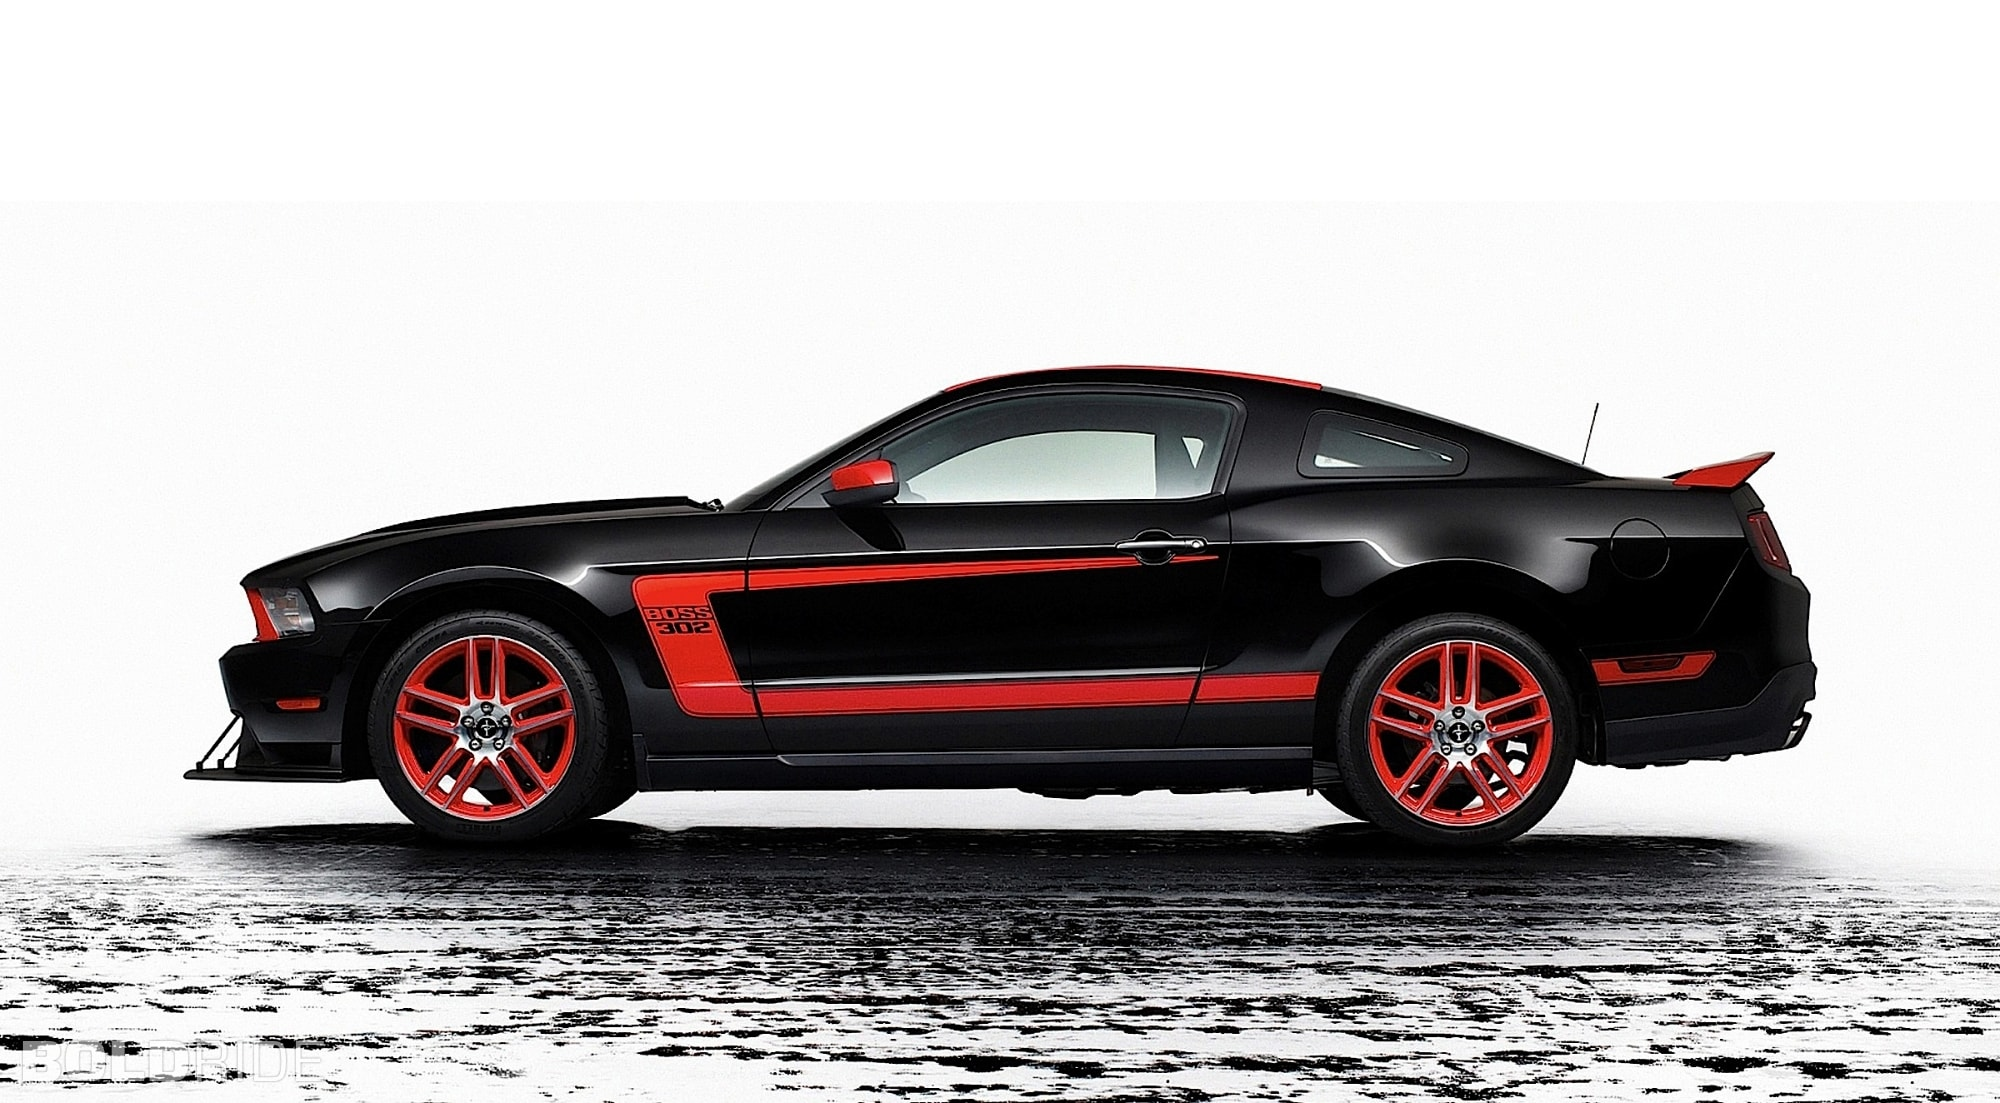 Ford Mustang Boss 302 Laguna Seca widescreen wallpapers